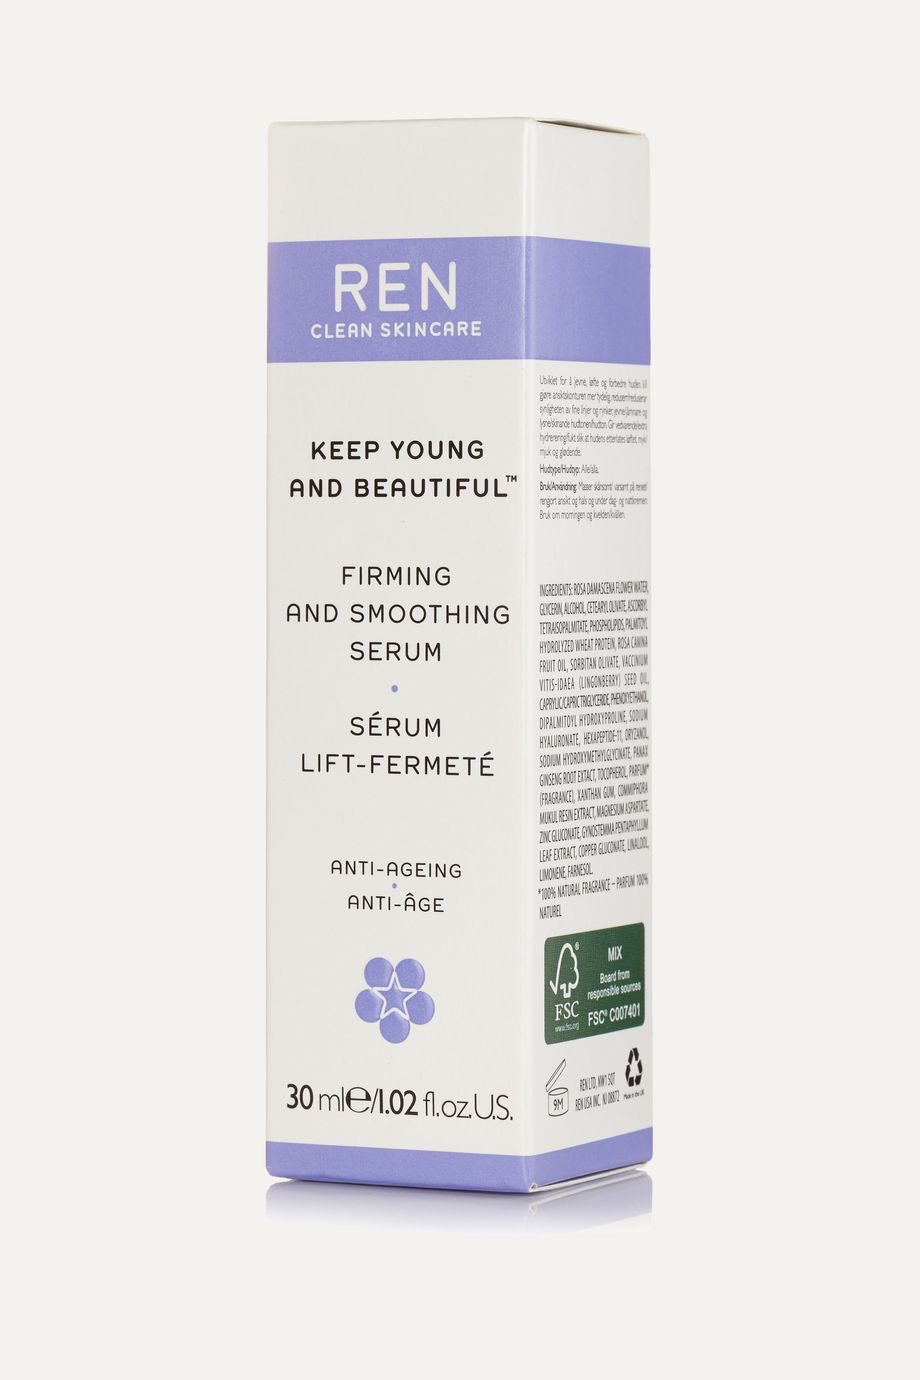 REN Clean Skincare Keep Young and Beautiful Firming and Smoothing Serum, 30ml